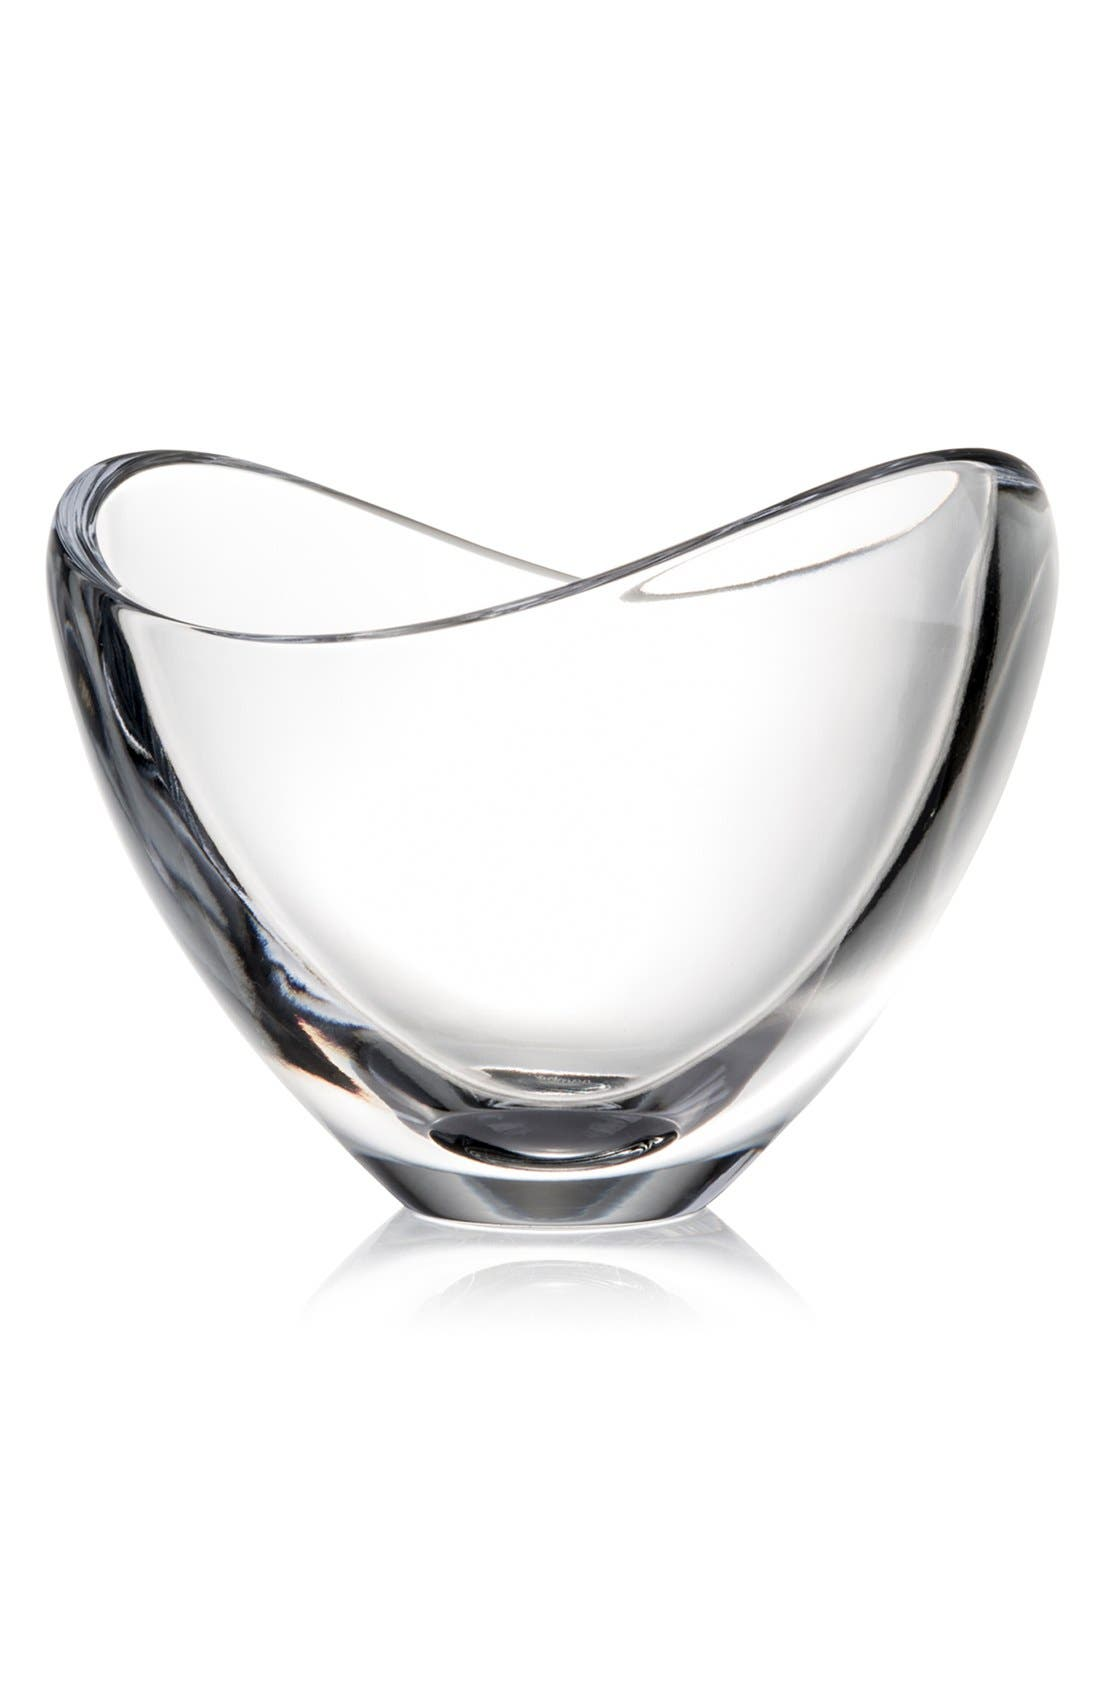 Alternate Image 1 Selected - Nambé 'Butterfly' Full-Lead Crystal Bowl